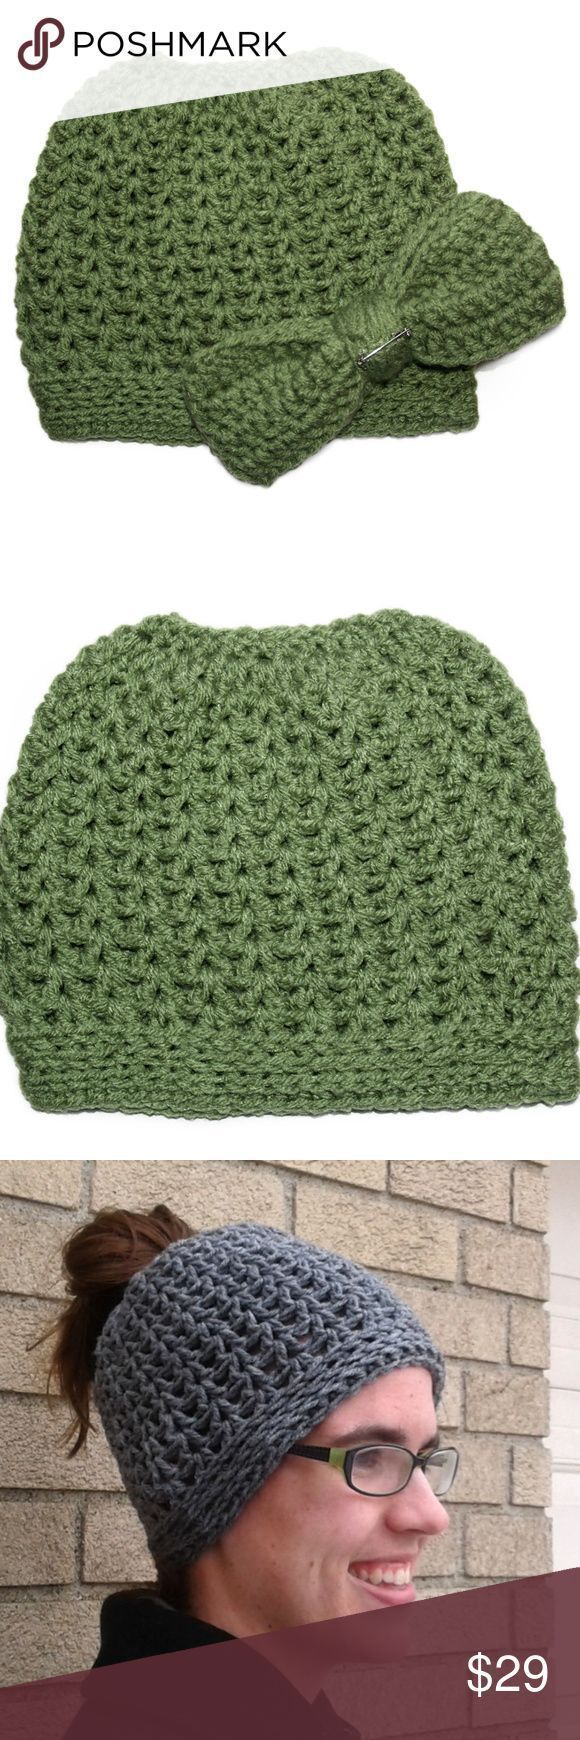 Green Messy Bun Hat w Clip-On Bow    MADE TO ORDER #Bow #Bun #fun #green #Hat #high_messy_bun #Messy #Order #Trend #wClipOn #messybunhat Green Messy Bun Hat w Clip-On Bow    MADE TO ORDER #Bow #Bun #fun #green #Hat #high_messy_bun #Messy #Order #Trend #wClipOn #messybunhat Green Messy Bun Hat w Clip-On Bow    MADE TO ORDER #Bow #Bun #fun #green #Hat #high_messy_bun #Messy #Order #Trend #wClipOn #messybunhat Green Messy Bun Hat w Clip-On Bow    MADE TO ORDER #Bow #Bun #fun #green #Hat #high_messy #messybunhat